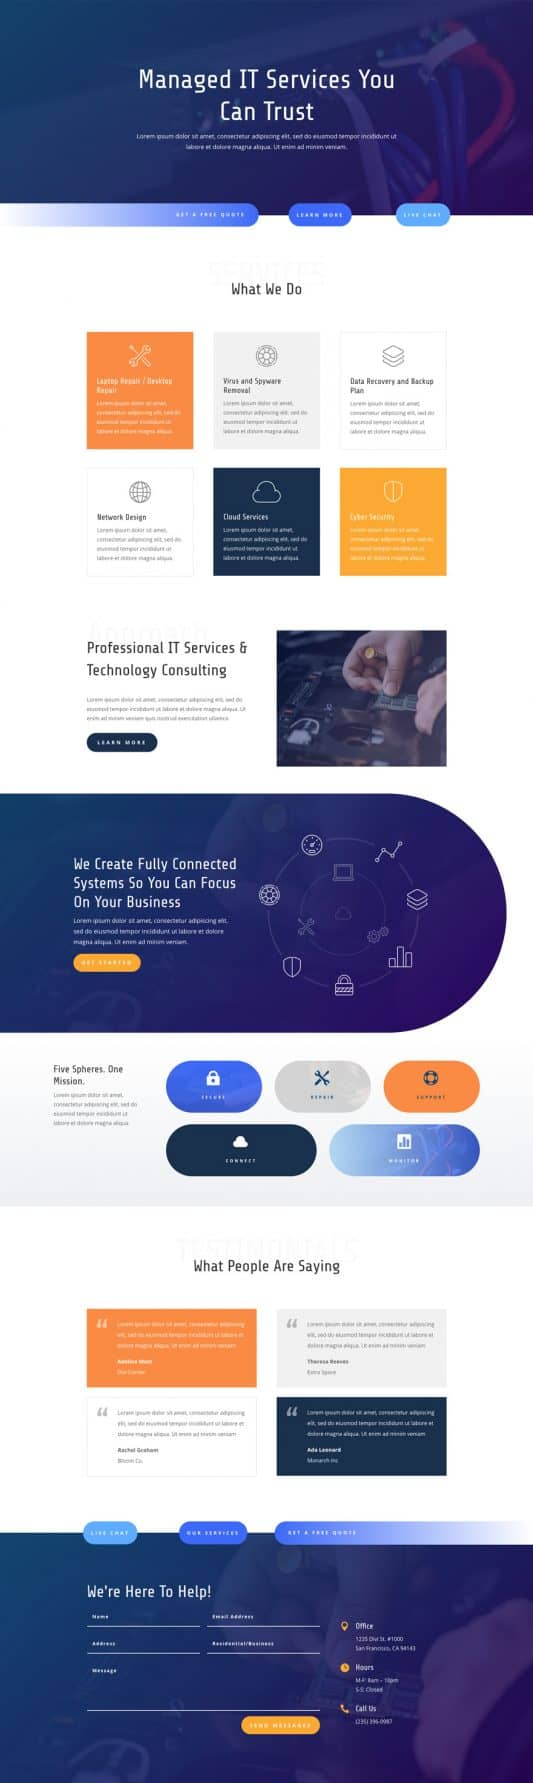 The IT Services Page Style: Homepage Design 1